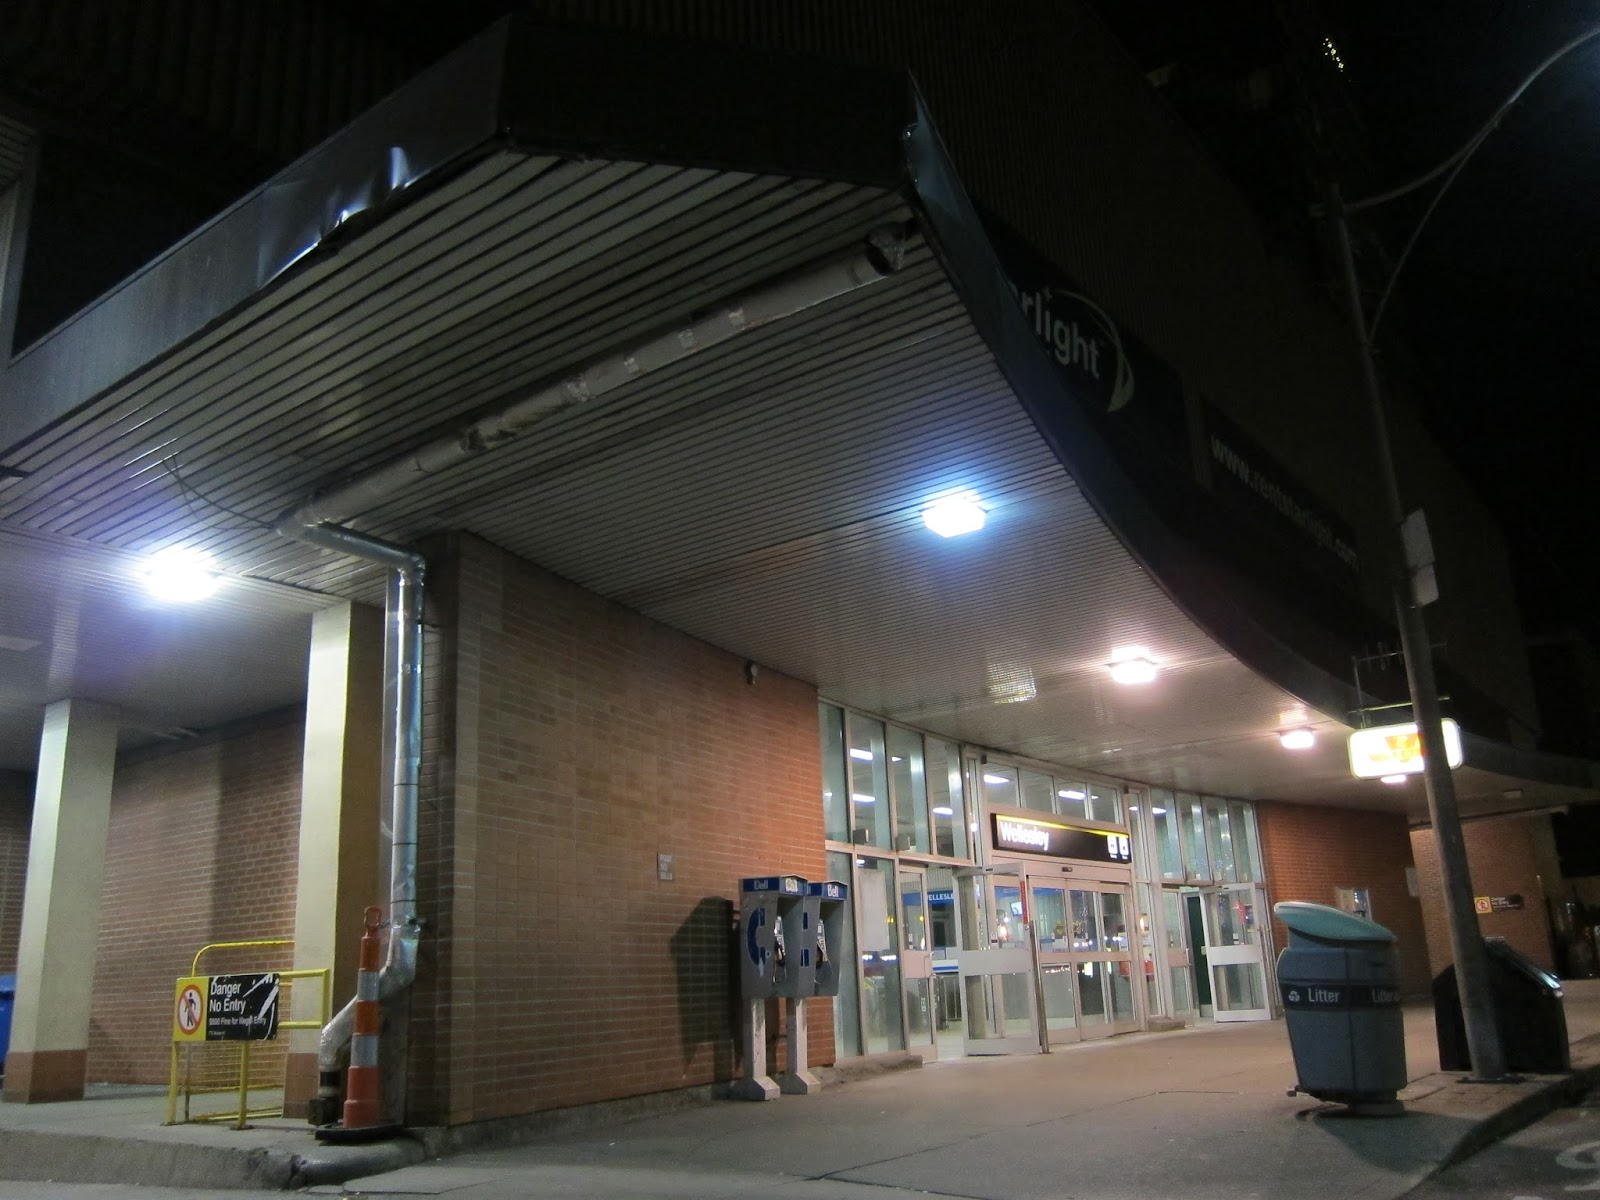 Wellesley station front entrance